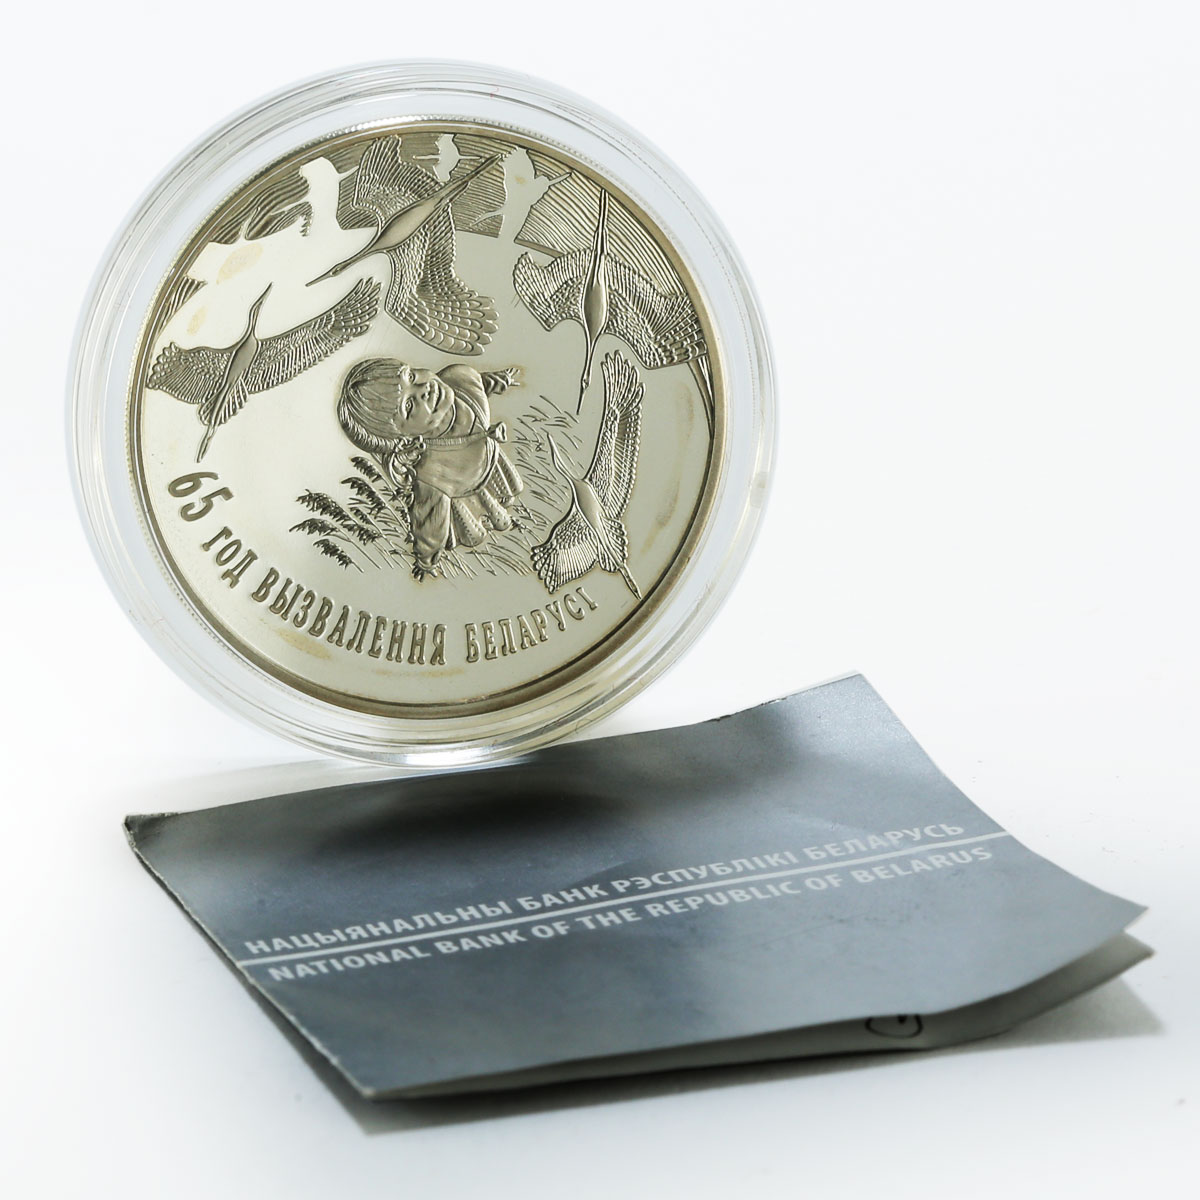 Belarus 20 rubles 65th Liberation from Nazi Invaders silver coin 2009